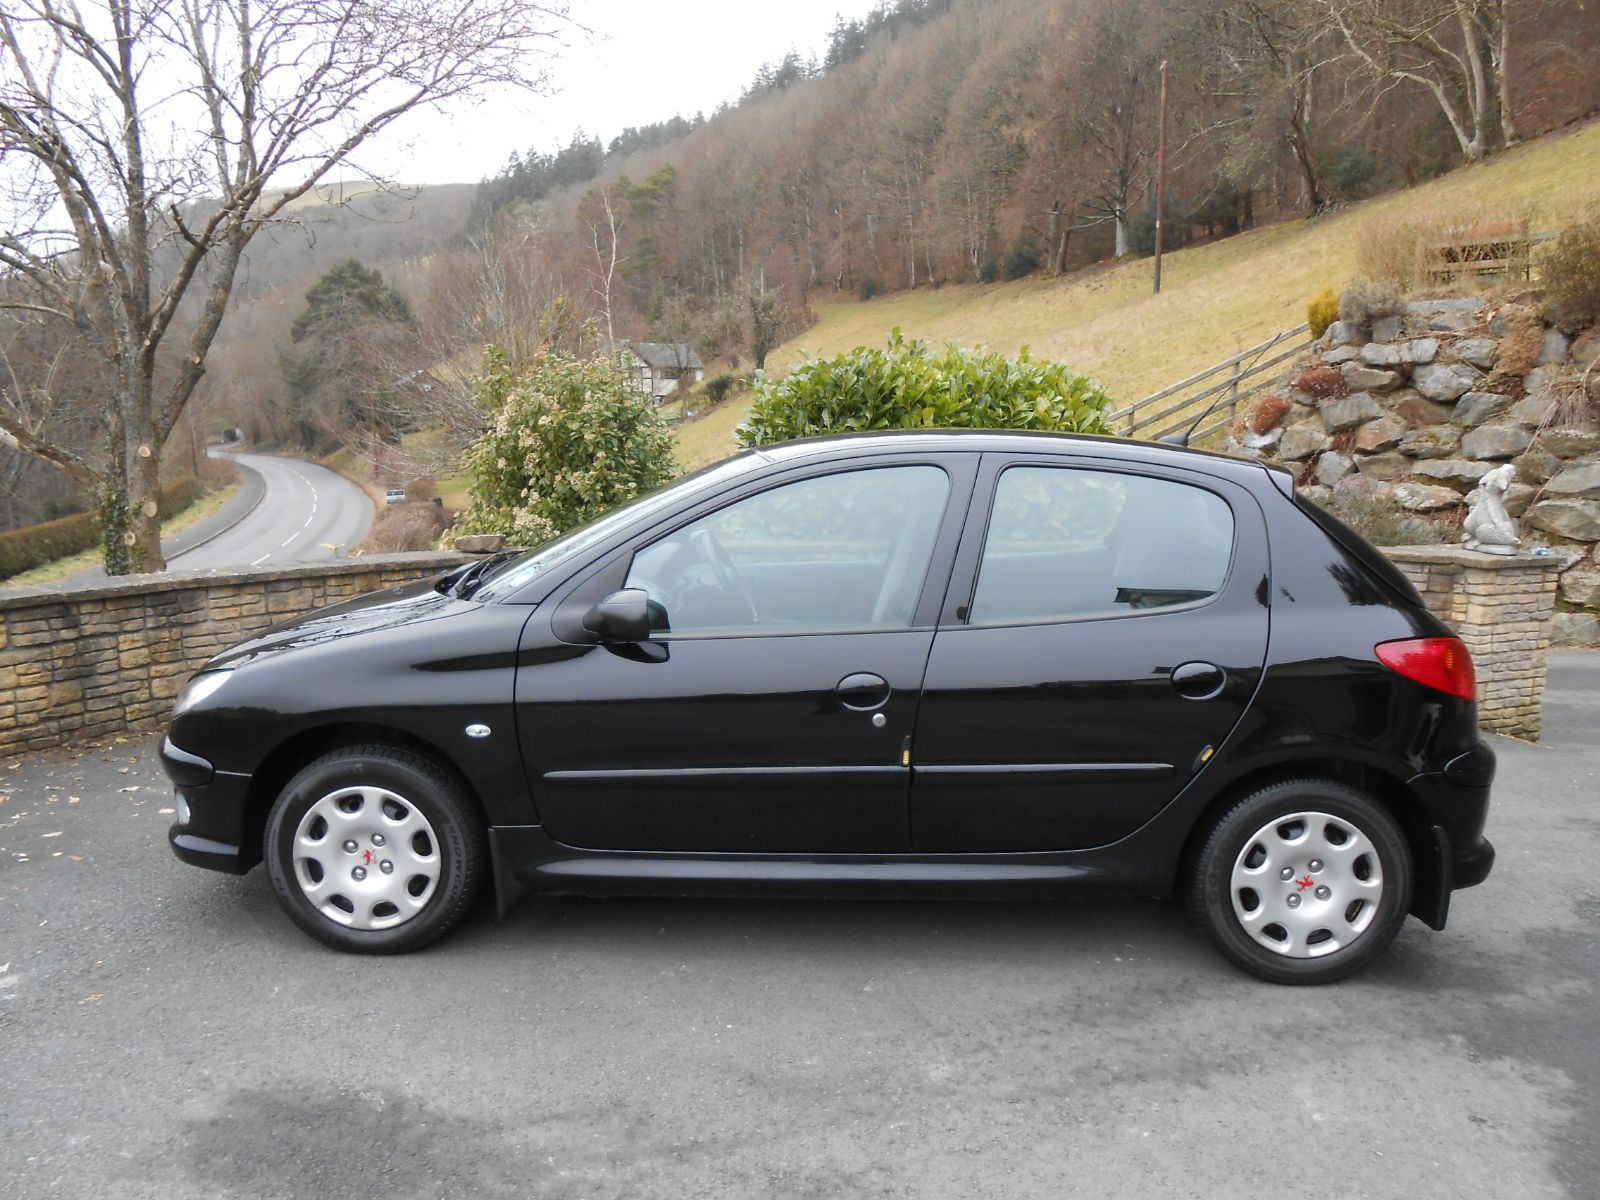 peugeot 206 1 4 hdi look 5 door car for sale llanidloes powys mid wales kevin jones cars used. Black Bedroom Furniture Sets. Home Design Ideas